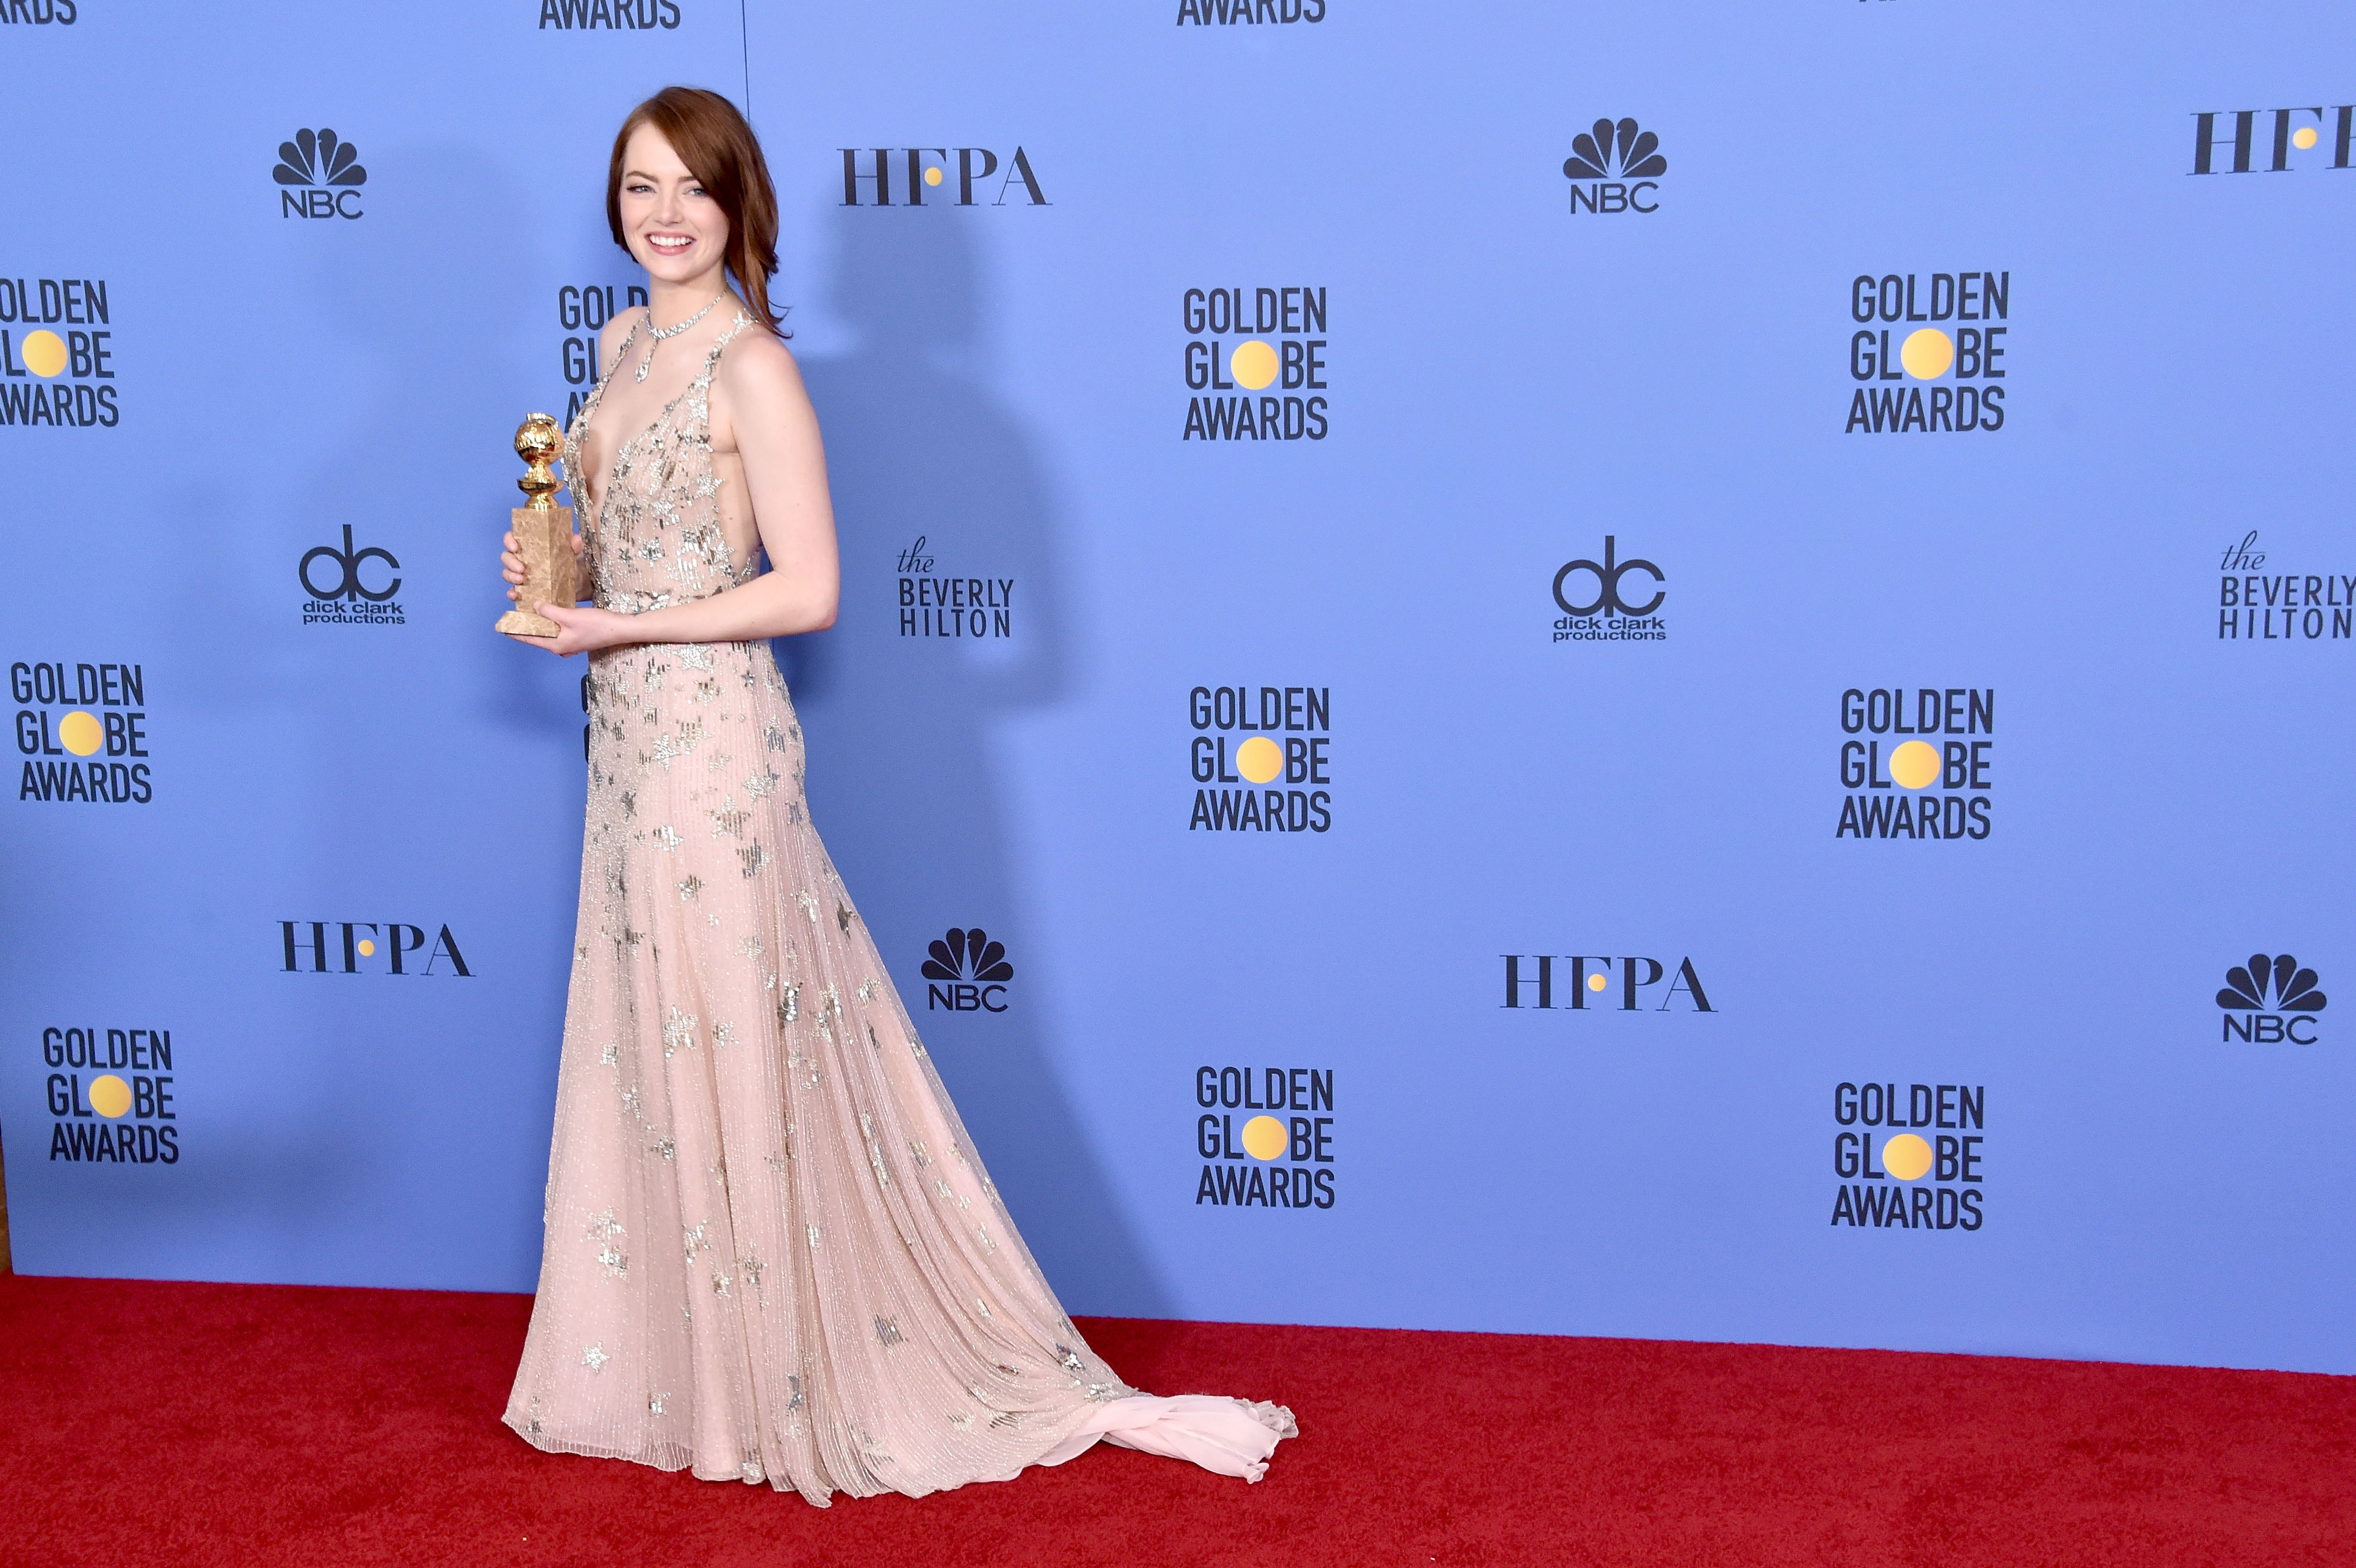 BEVERLY HILLS, CA - JANUARY 08: Actress Emma Stone poses in the press room during the 74th Annual Golden Globe Awards at The Beverly Hilton Hotel on January 8, 2017 in Beverly Hills, California. (Photo by Alberto E. Rodriguez/Getty Images)